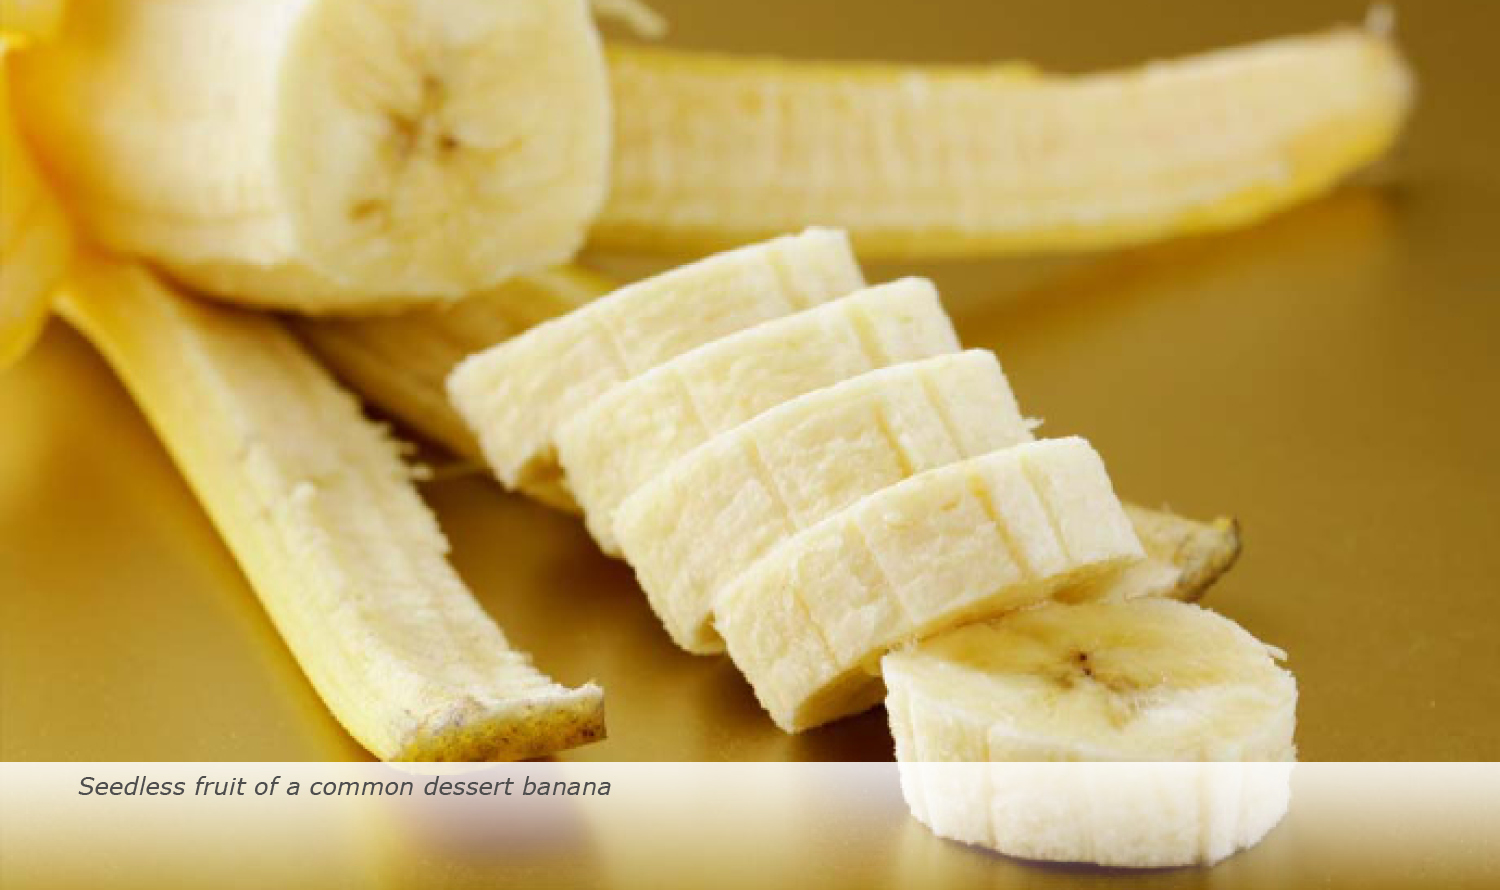 Info & Facts: Seedless fruit of a common dessert banana